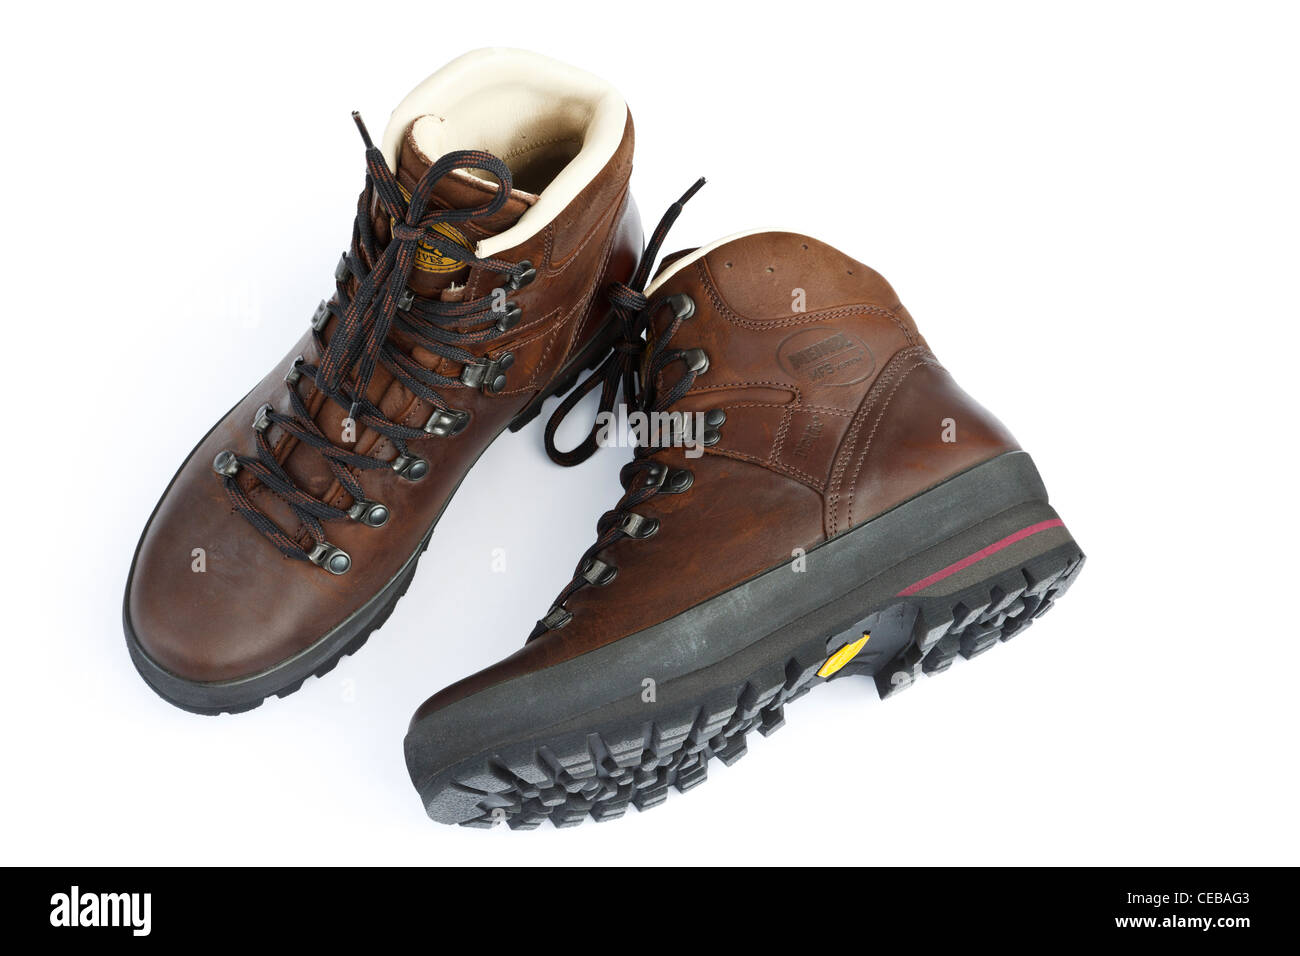 9ba1aacb3915 One pair of traditional brown leather walking boots or hiking boots by  Meindl with a Vibram rubber sole isolated on a white background from above